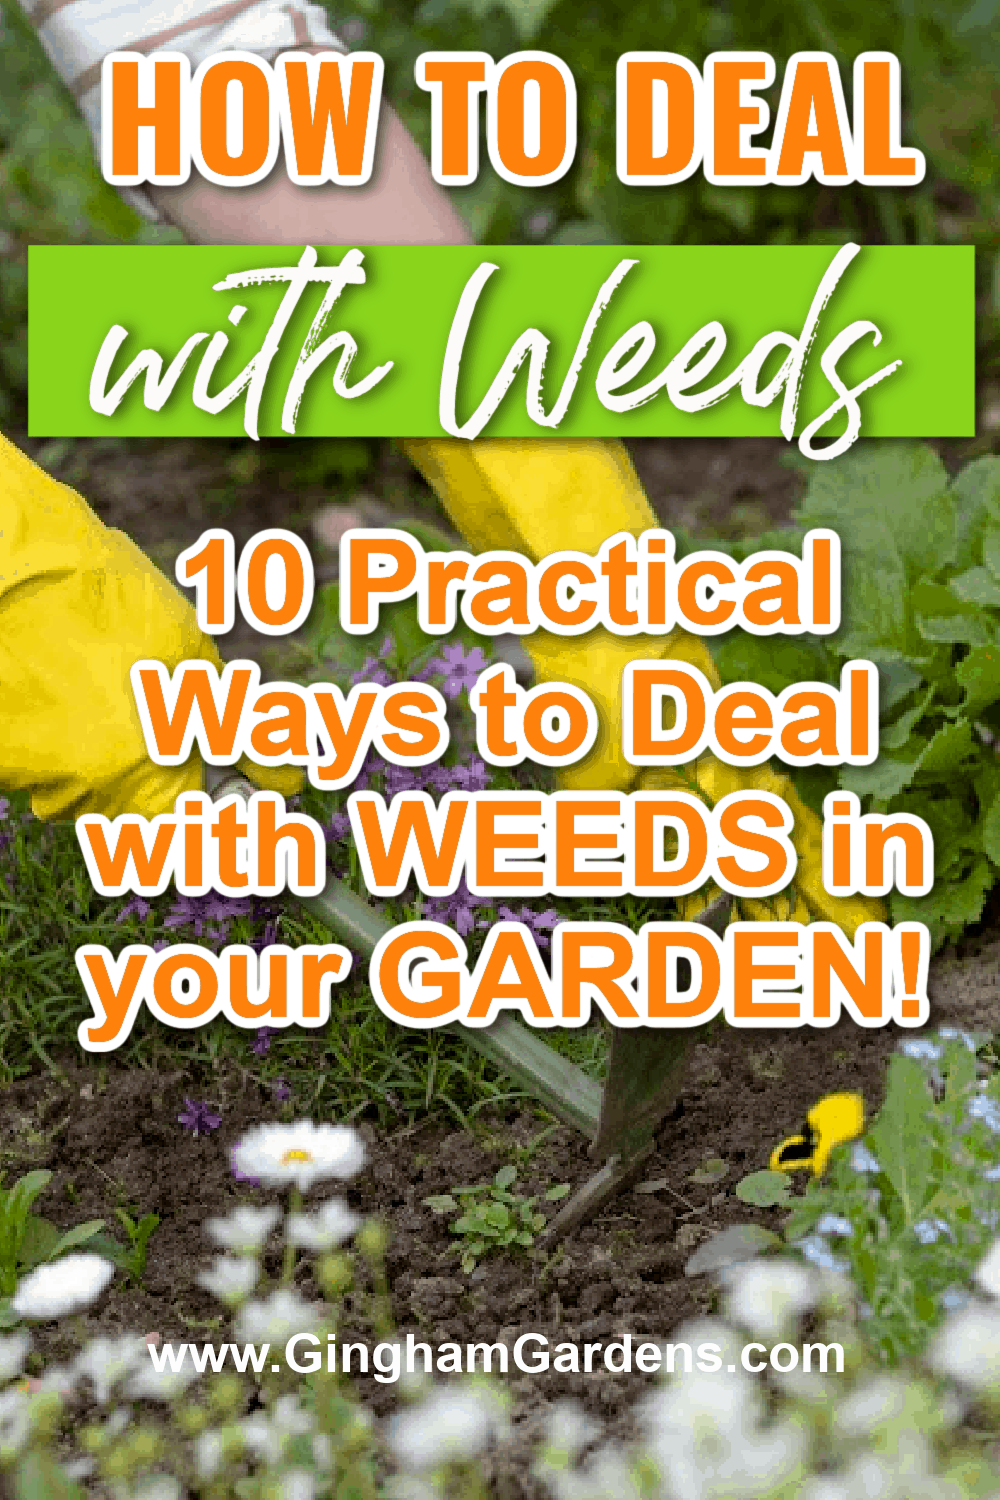 Image of a gardener pulling weeds with text overlay - 10 practical ways to Deal with Weeds In Your Garden